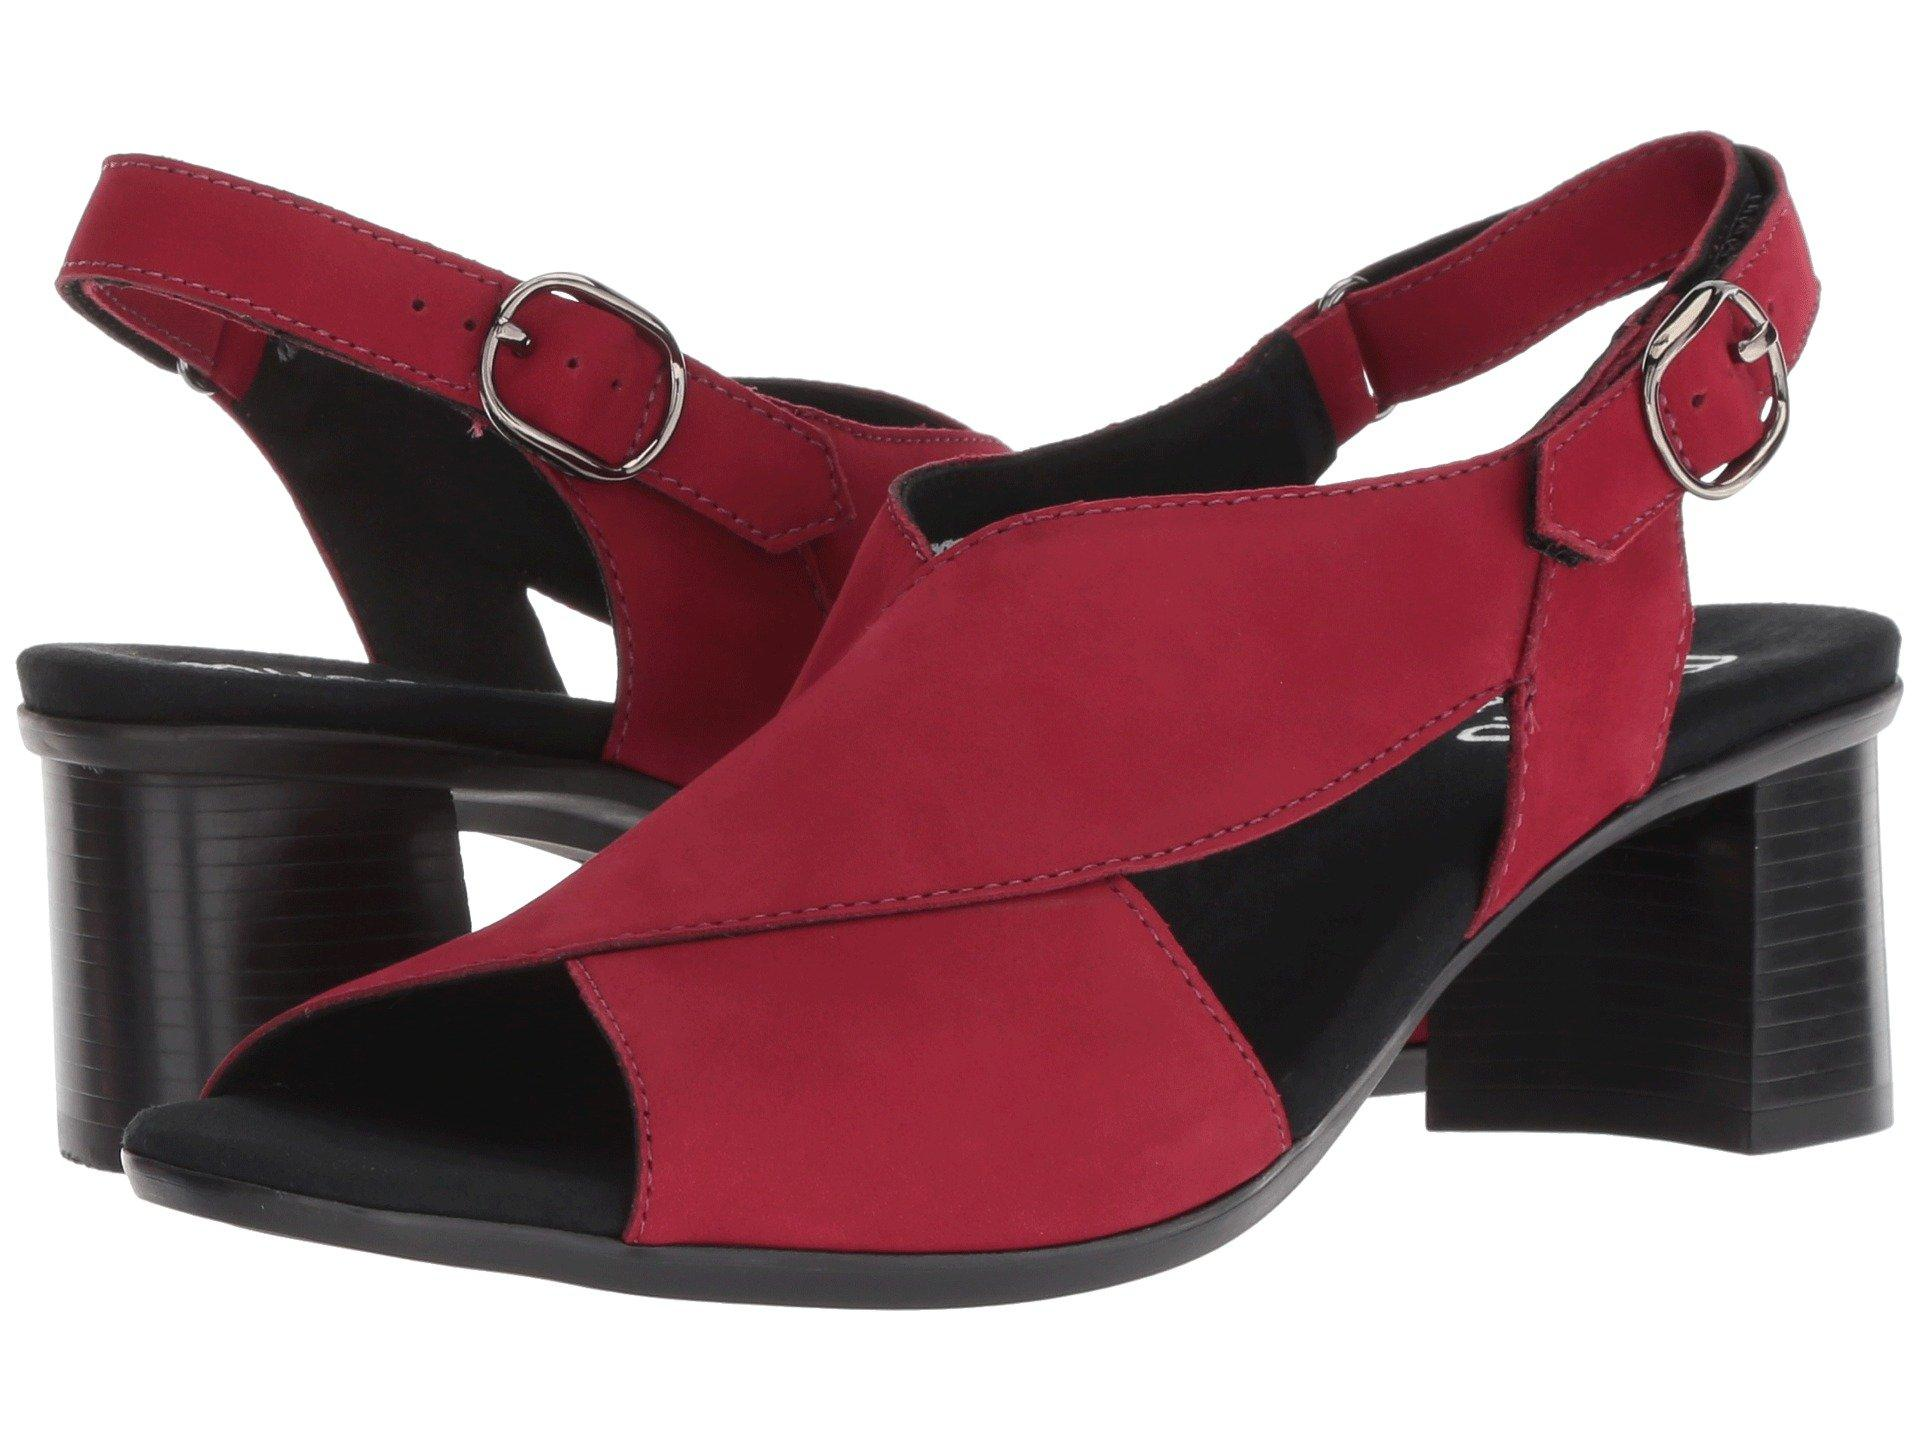 895dd6f2171 Lyst - Munro Laine (off-white Leather) Women s Sandals in Red